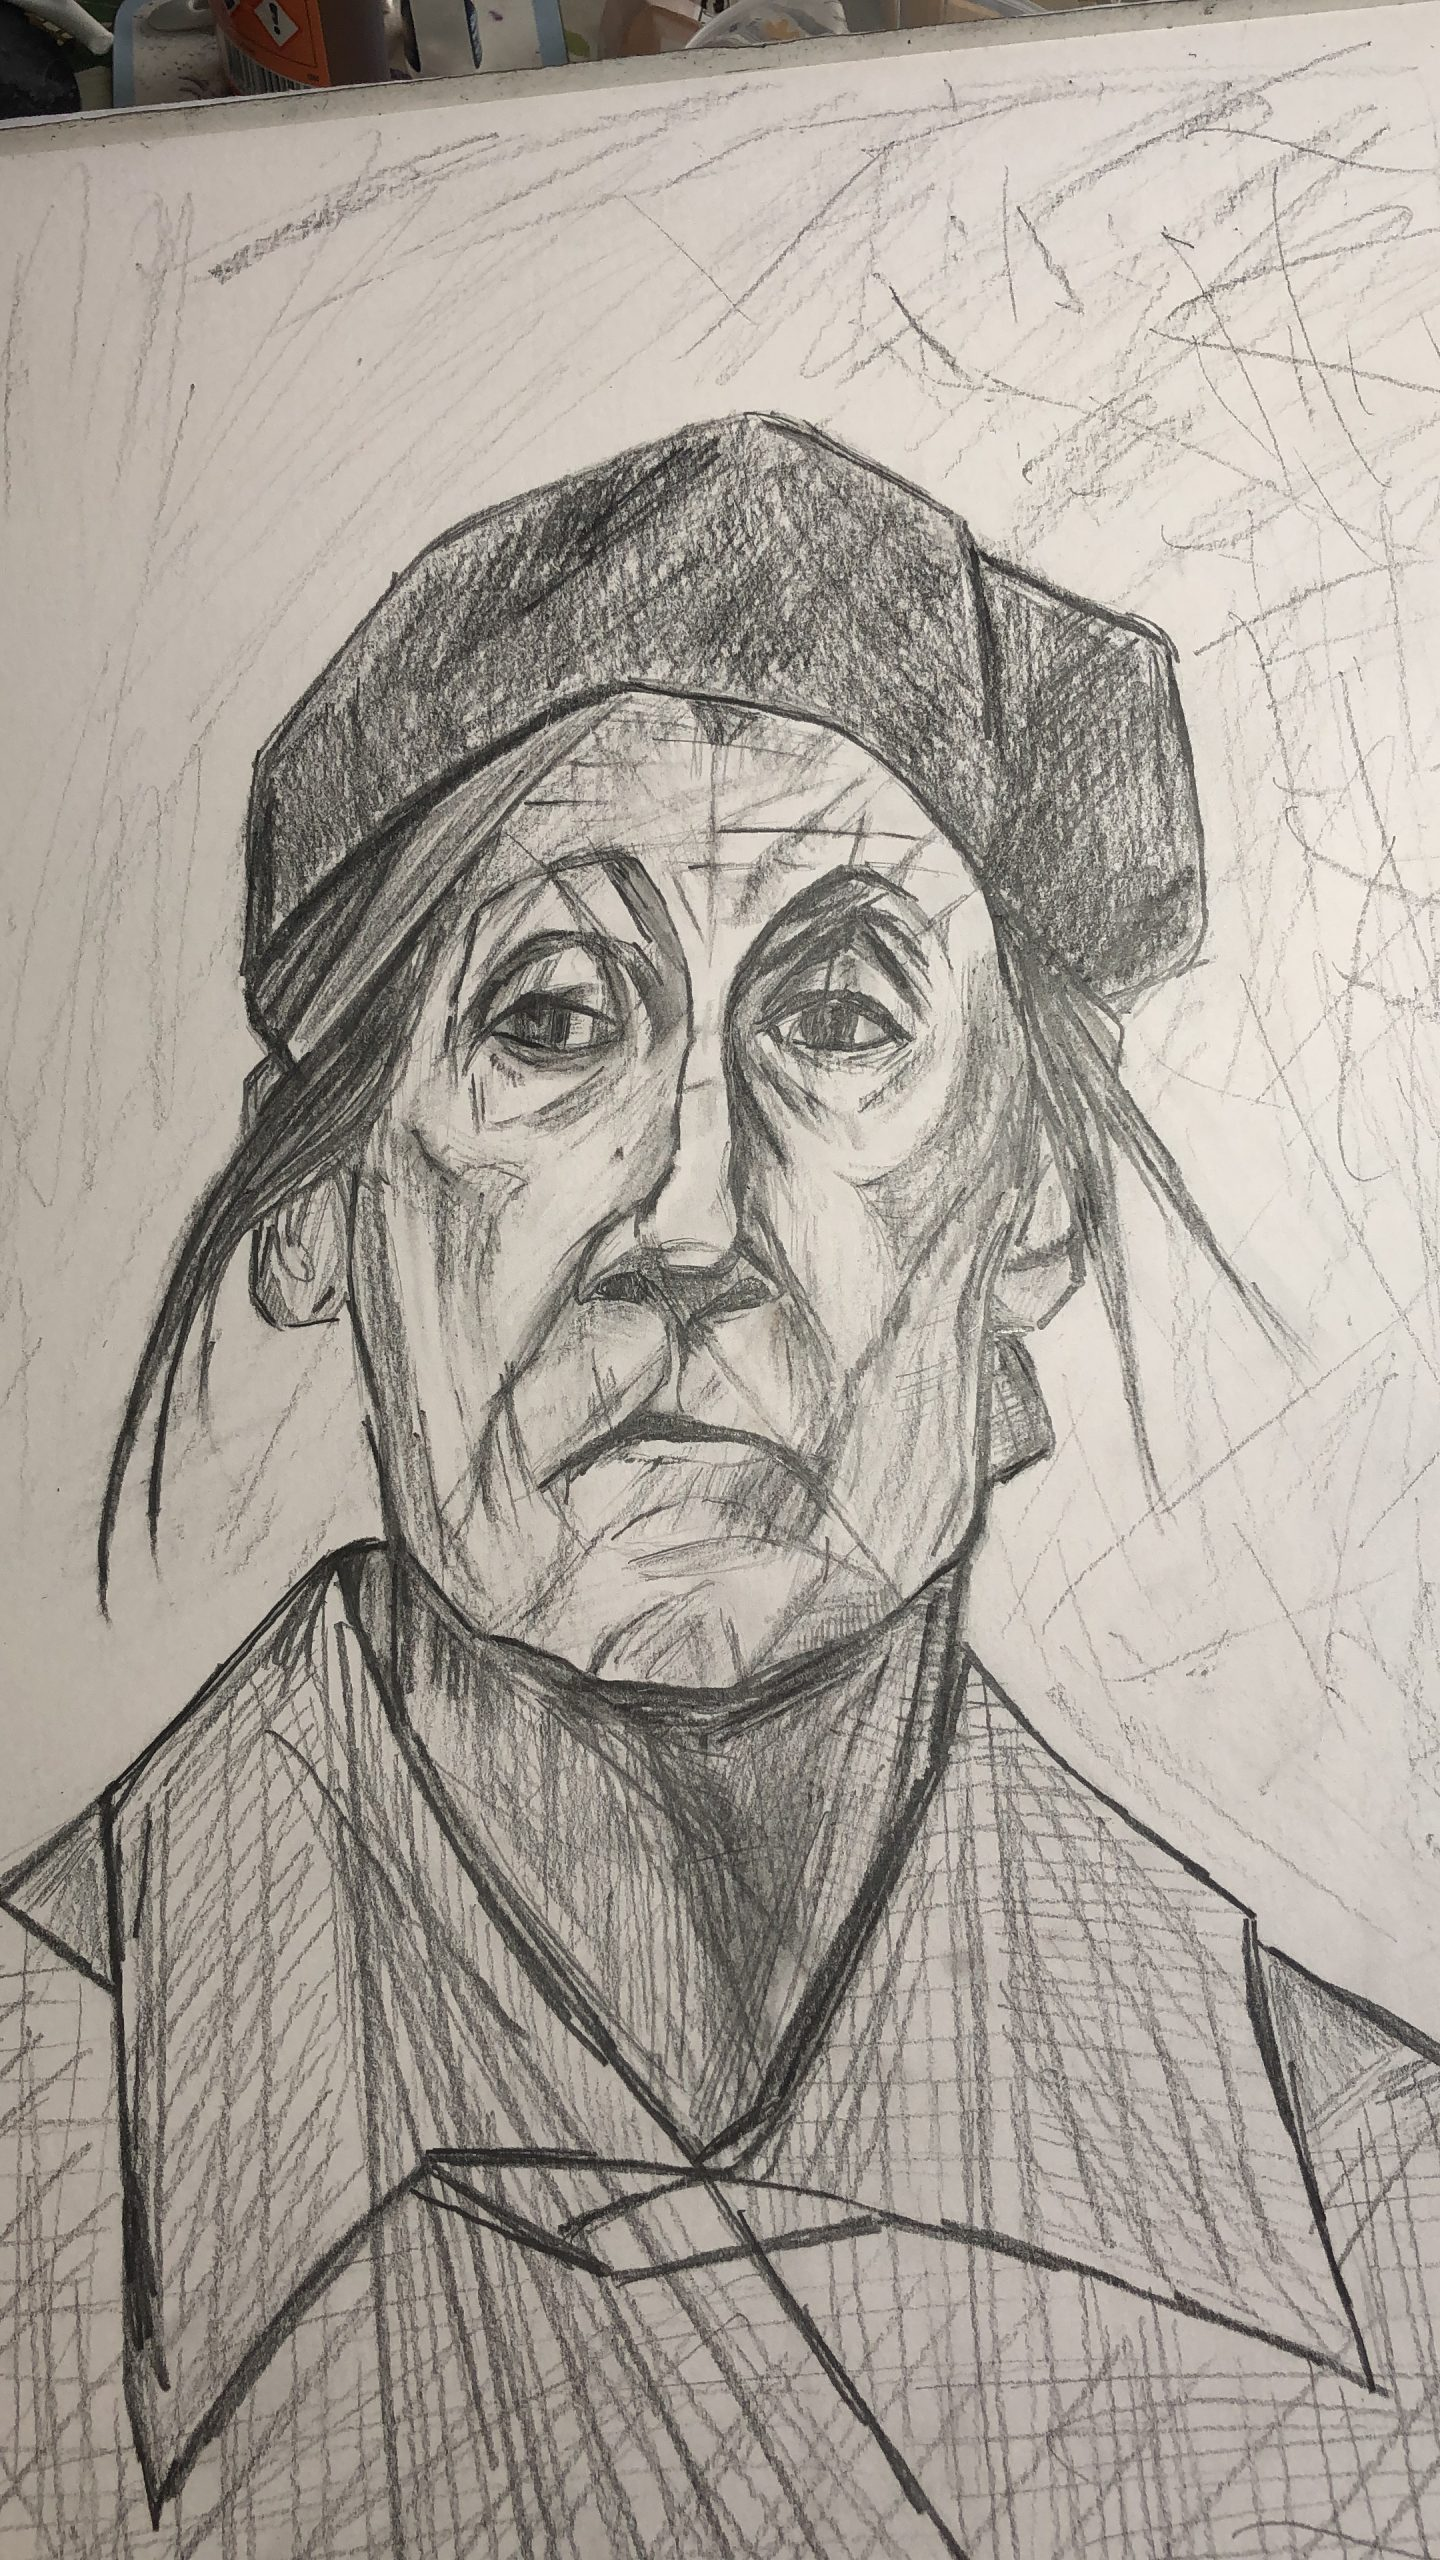 Portrait of an old woman by Mags